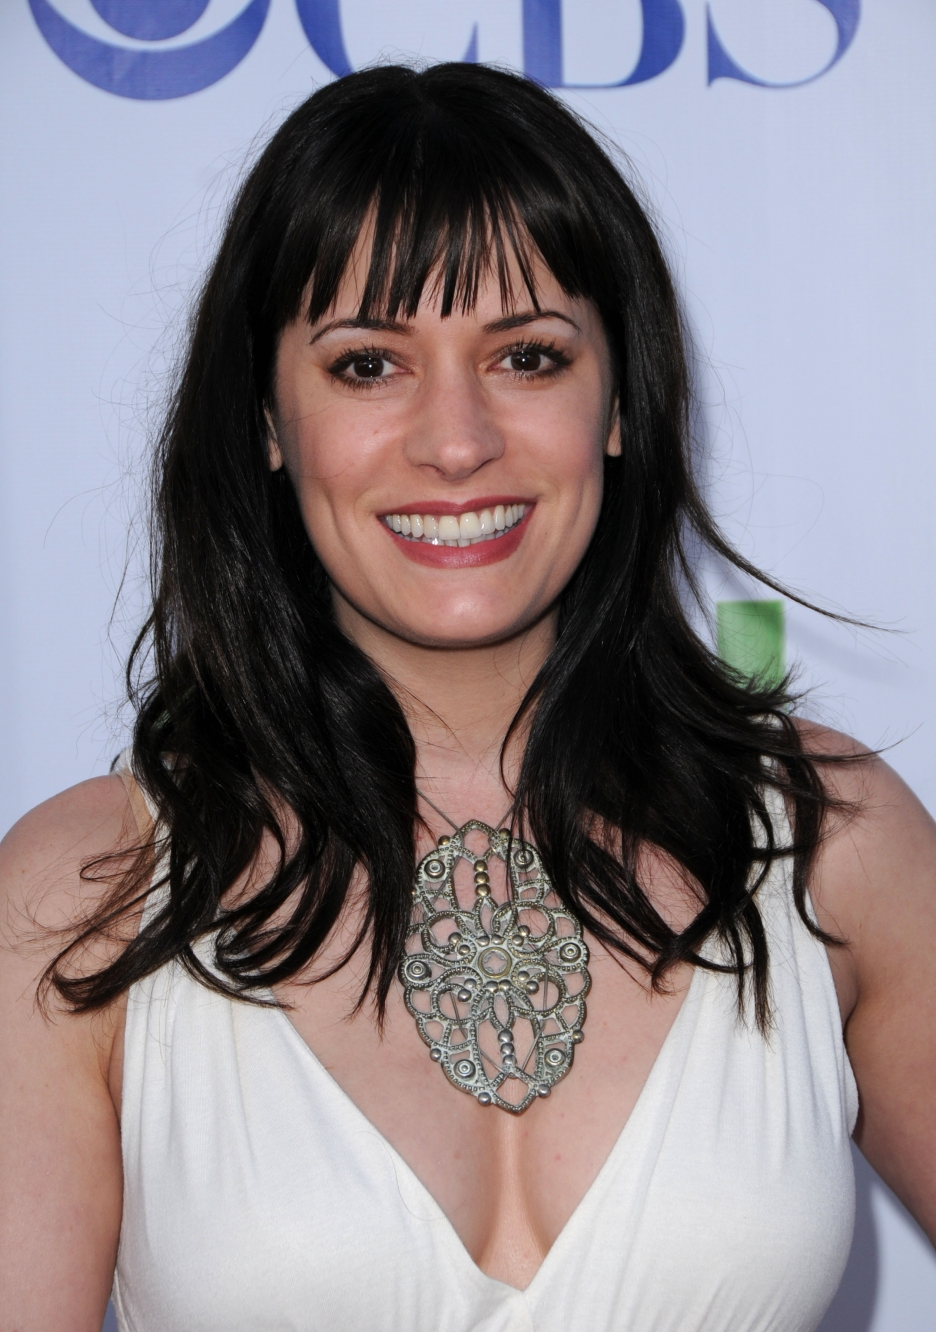 Paget Brewster Two And A Half Men Wiki Fandom Powered